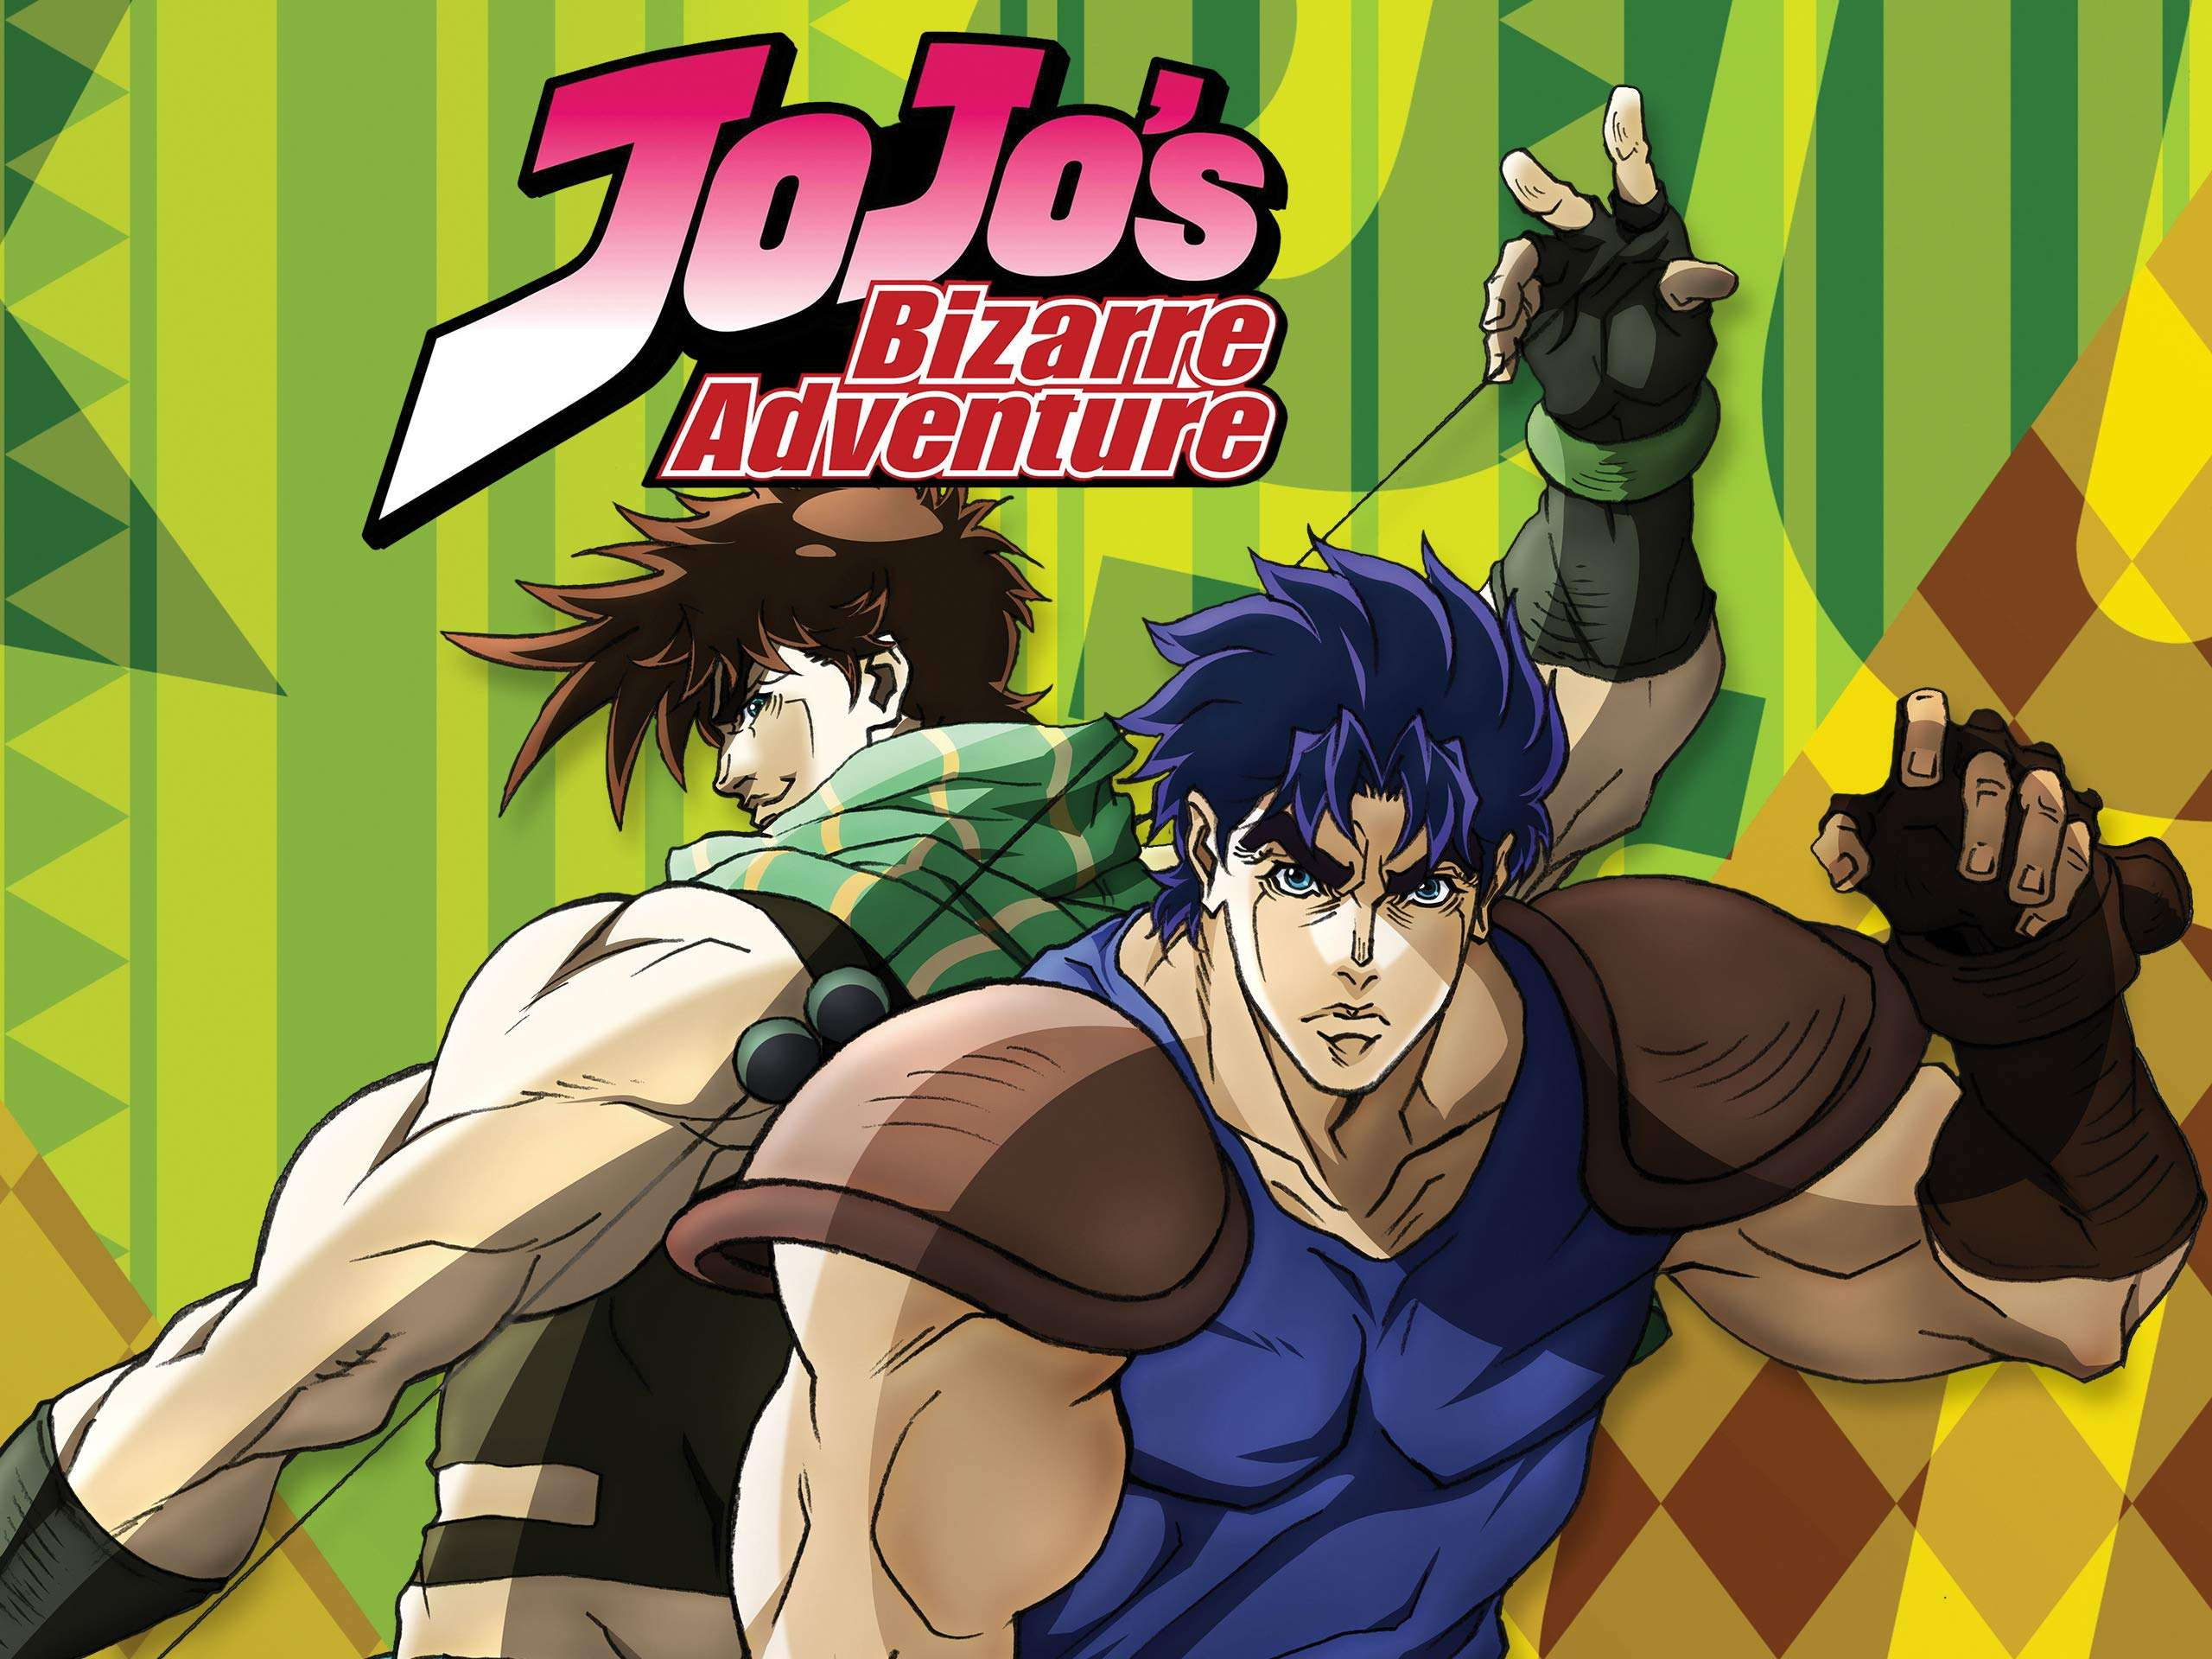 'Jojo's Bizarre Adventure' to suspend sales after Muslims say it insults Islam